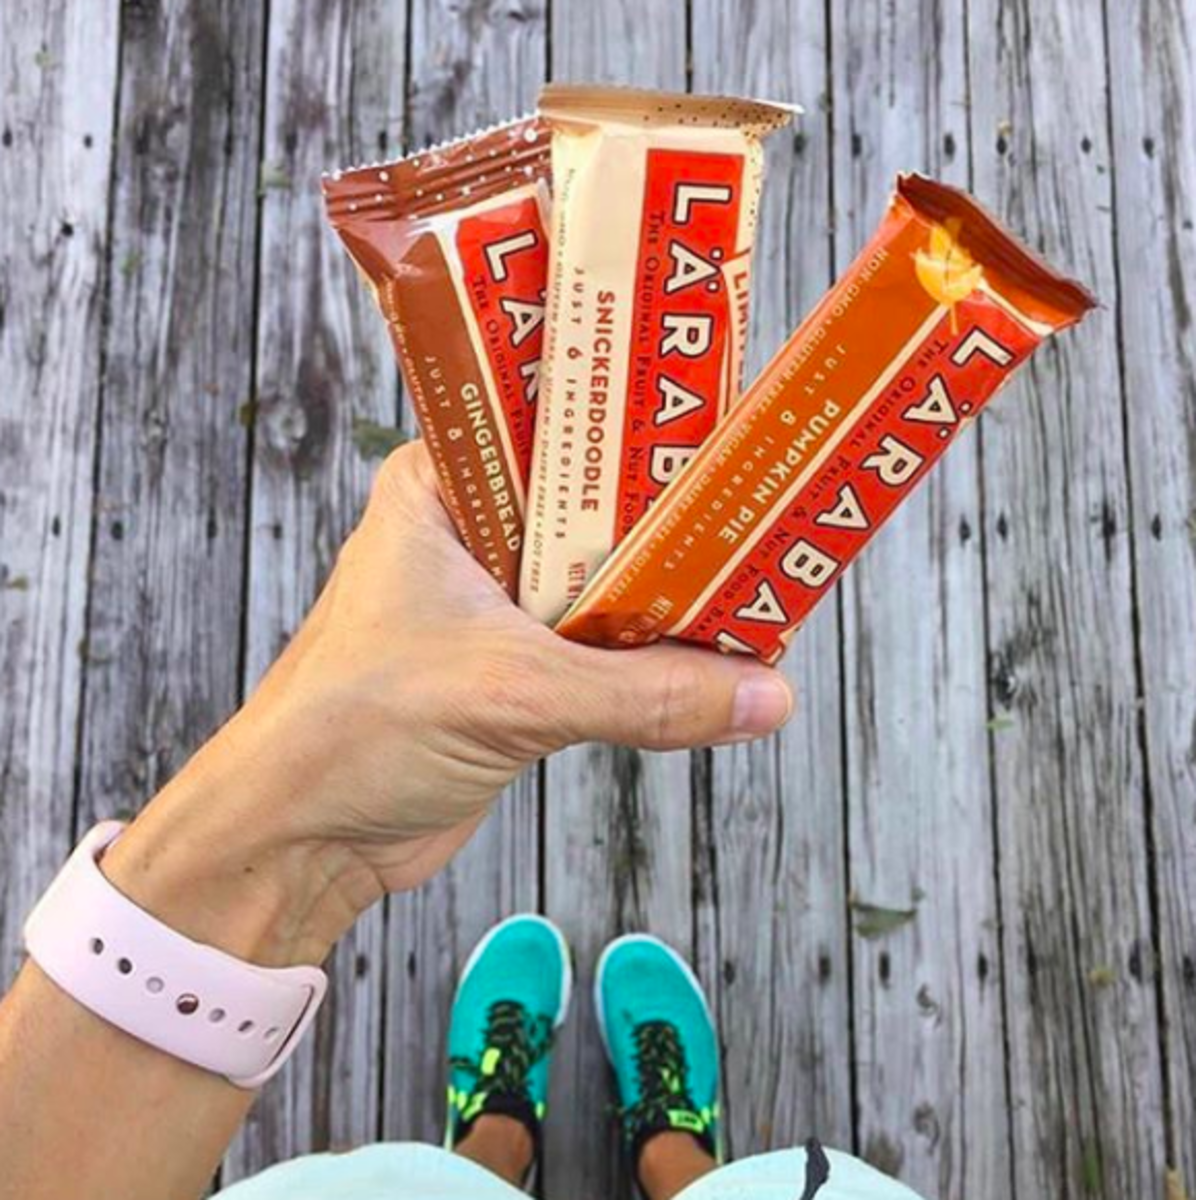 Natural Energy Bar Market 'Rife With Gimmicky Substitutes,' Says New Report